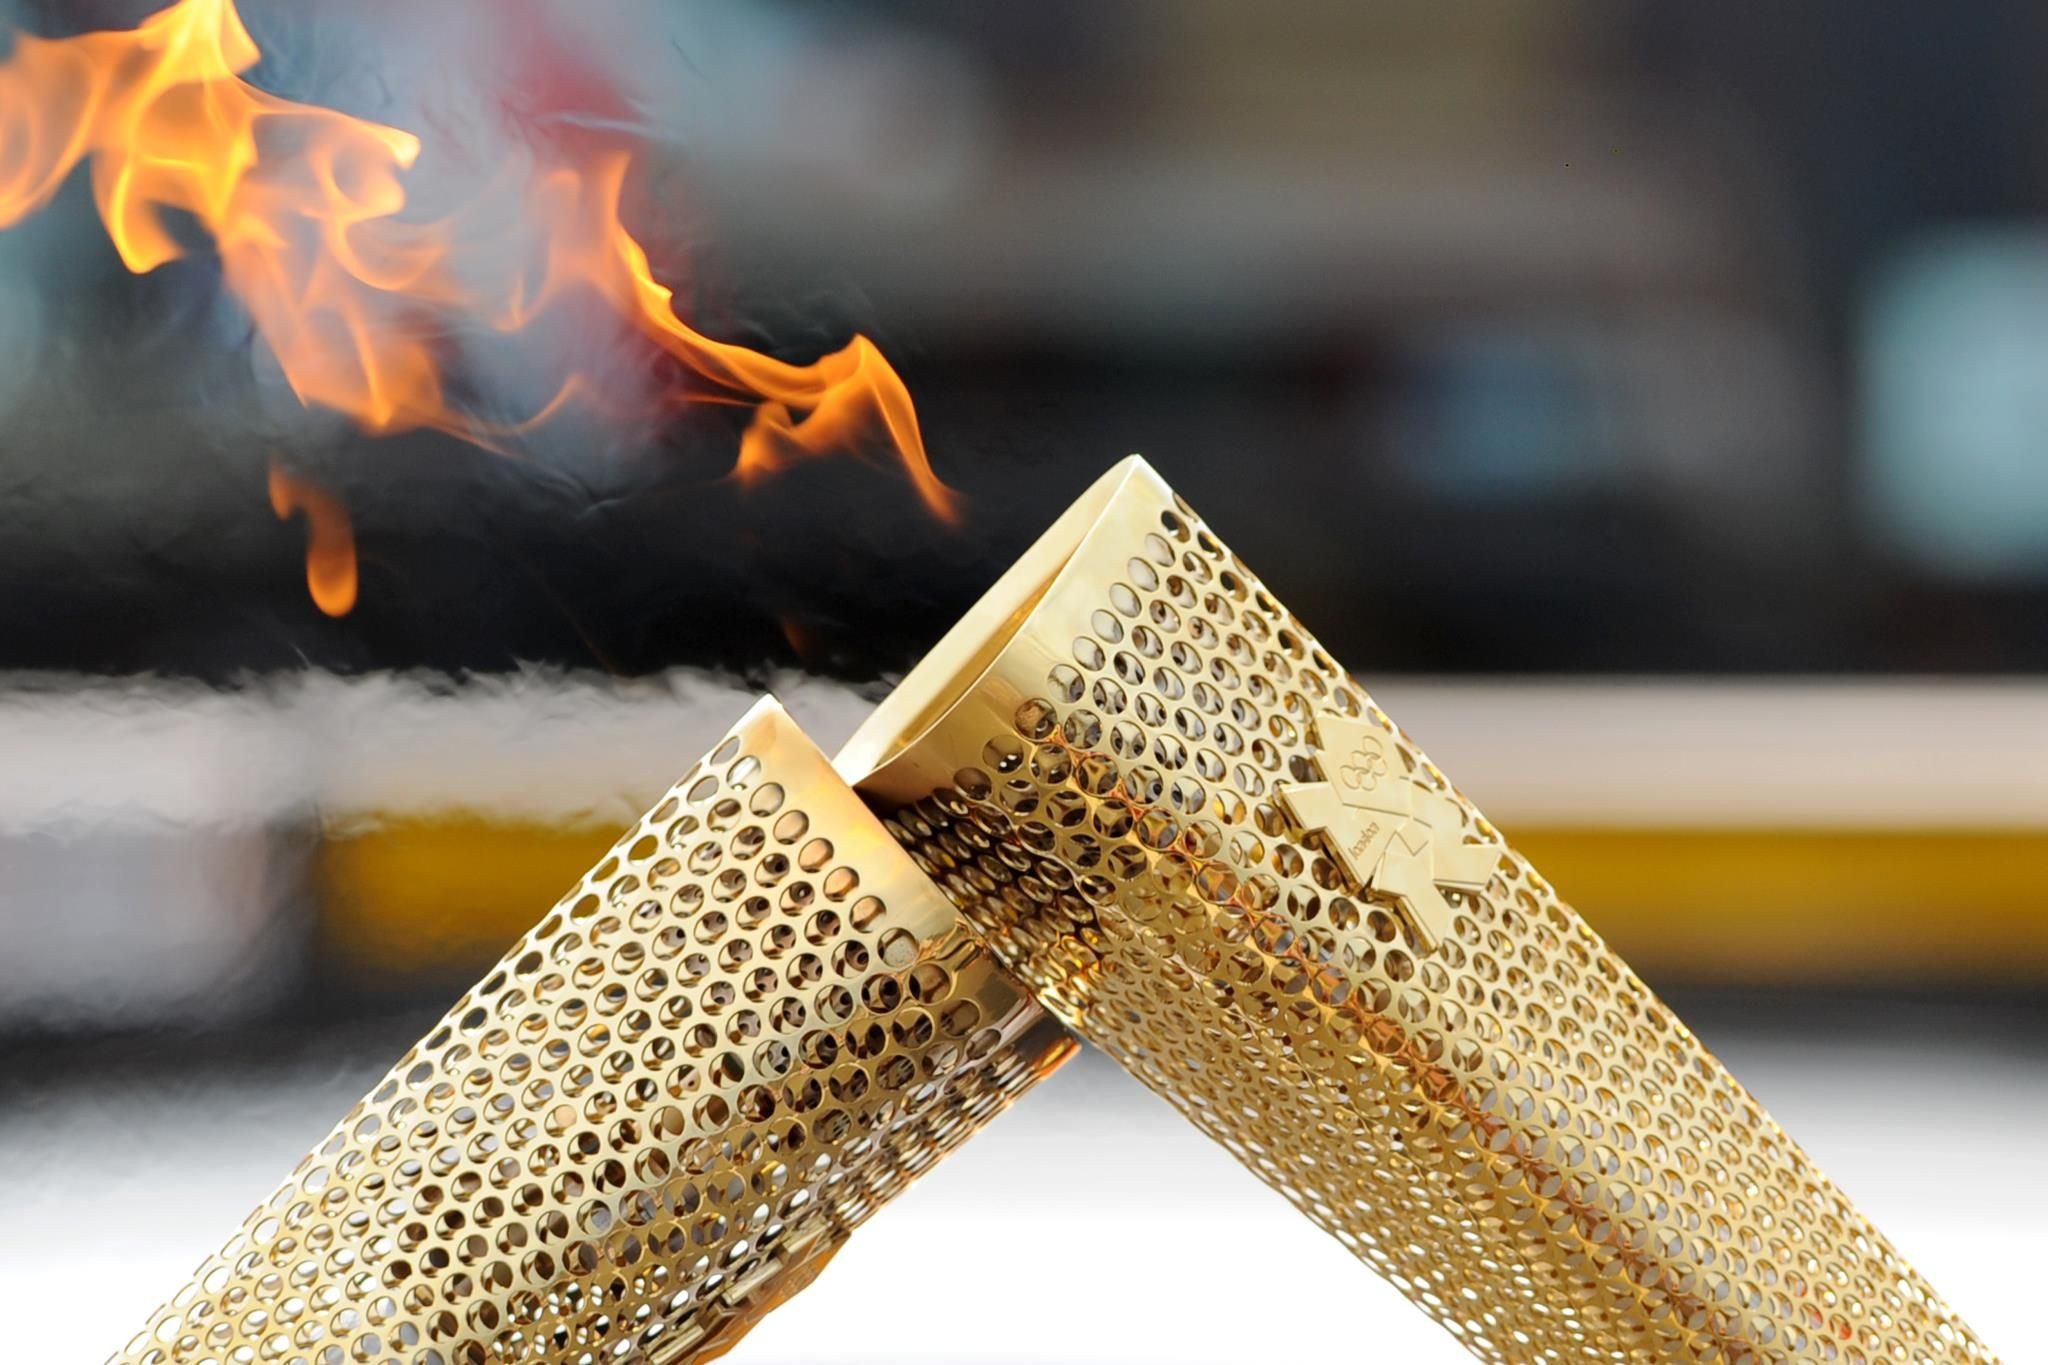 The British company that made the London 2012 Torch has gone into liquidation due to the coronavirus pandemic ©Getty Images